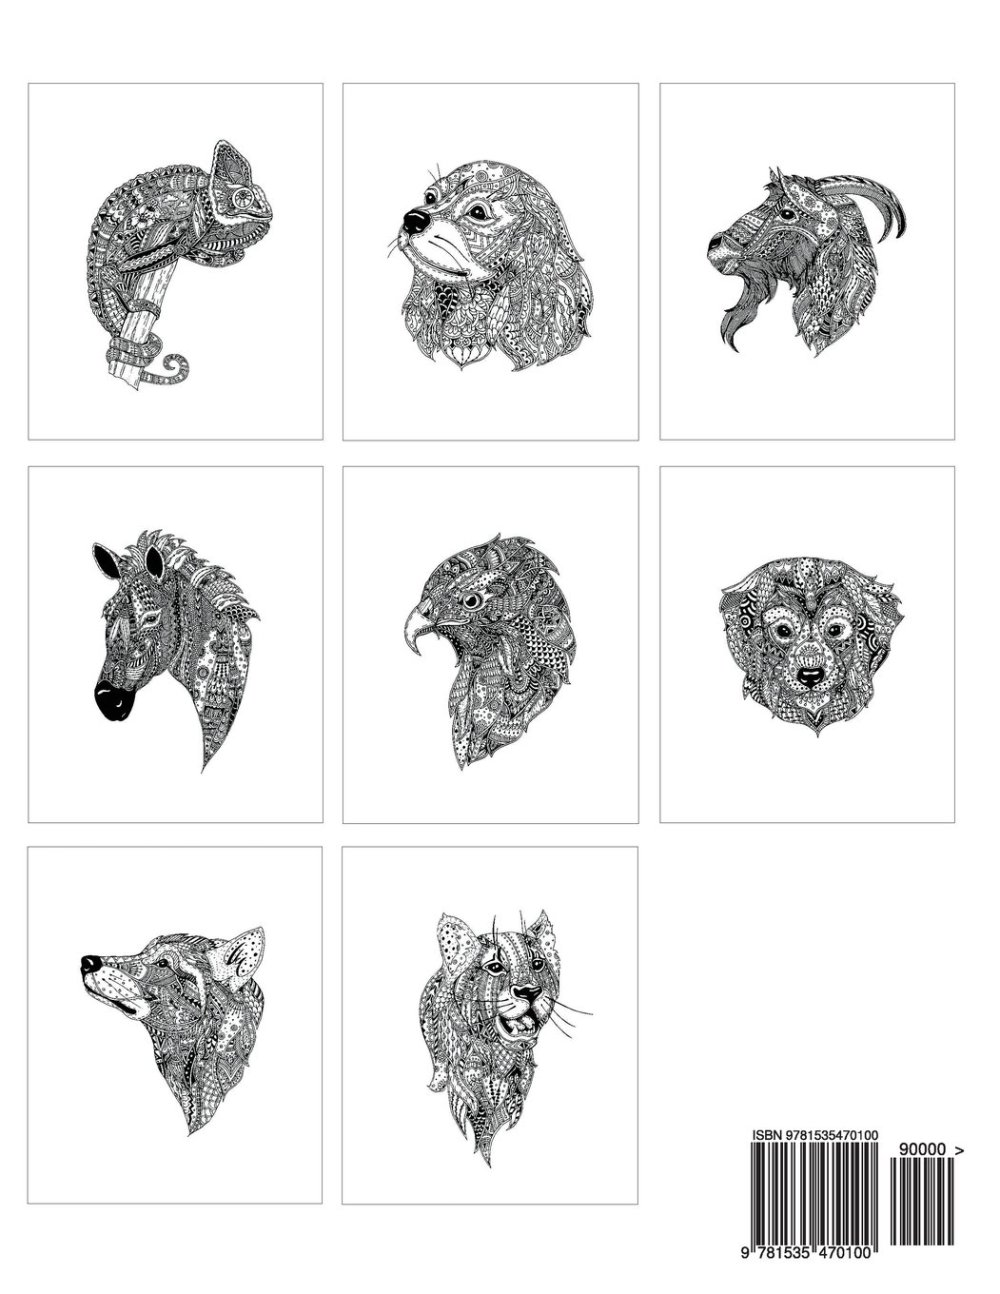 Doodle Animals adult coloring book of animals by Matt White